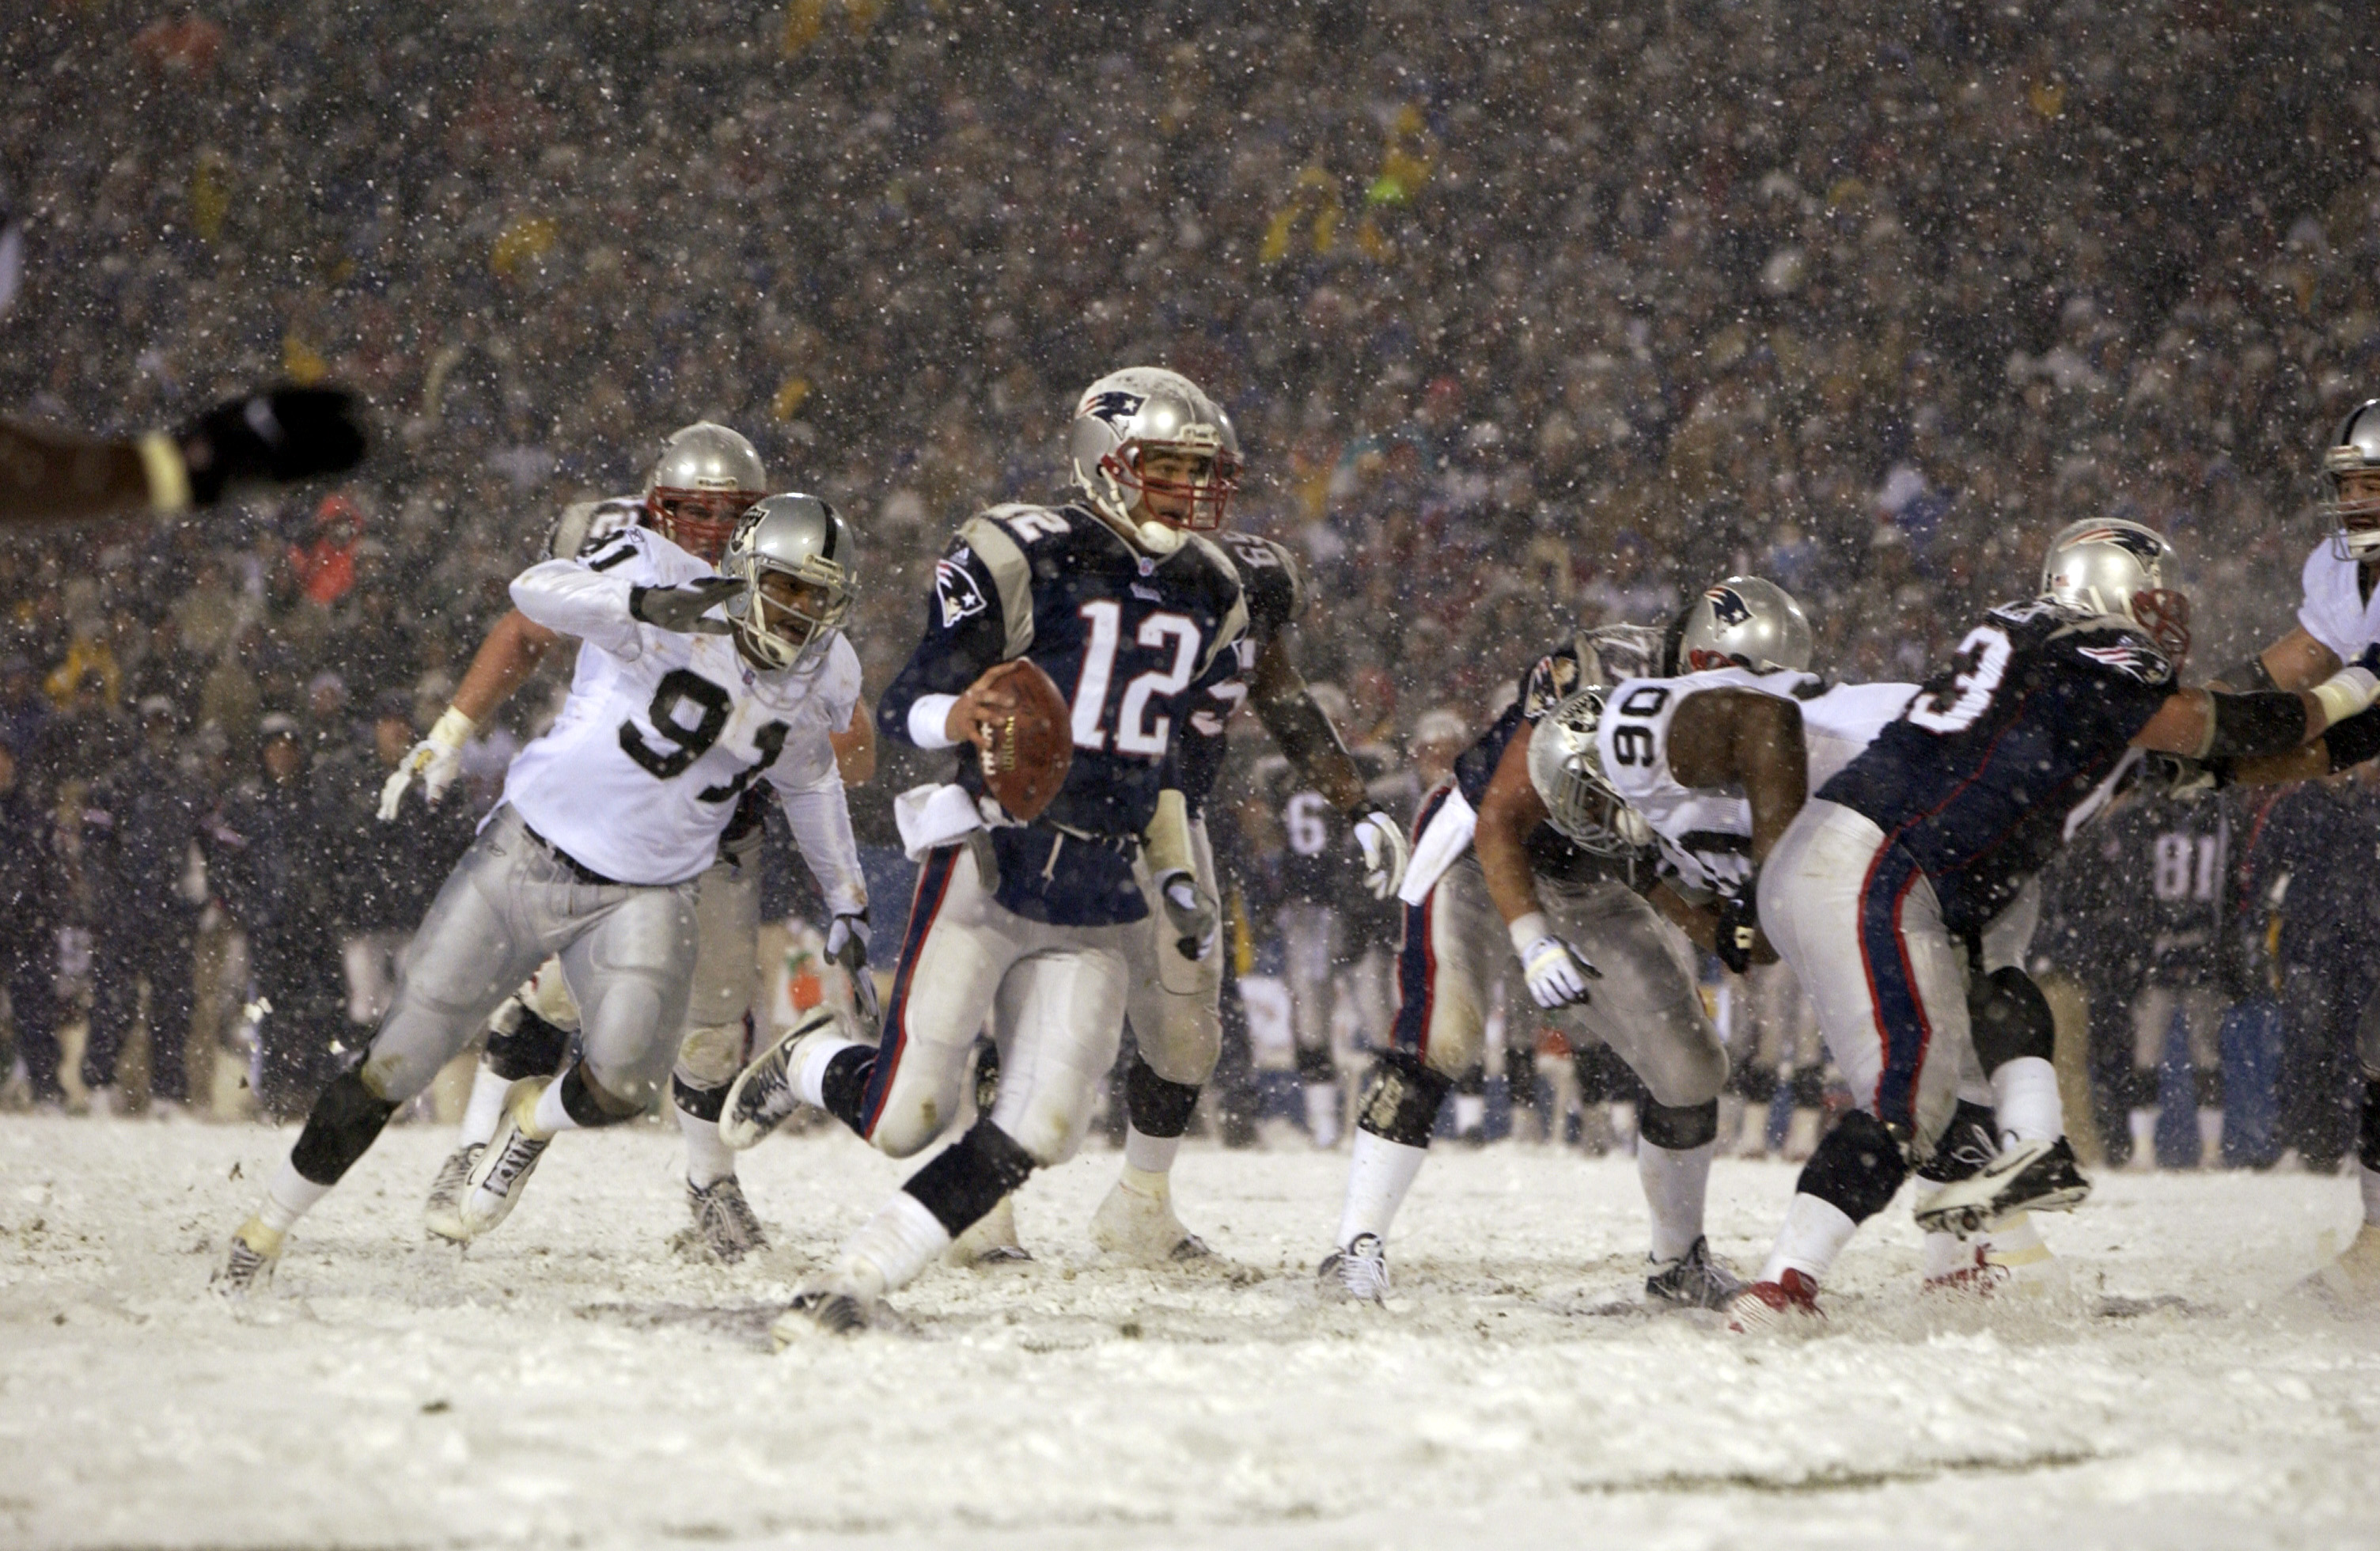 19 Jan 2002:  Quarterback  Tom Brady #12 of the New England Patriots runs in for a touchdown over the defense of Regan Upshaw #91of the Oakland Raiders during the AFC playoff game at Foxboro Stadium in Foxboro, Massachuesetts. The Patriots came from behin